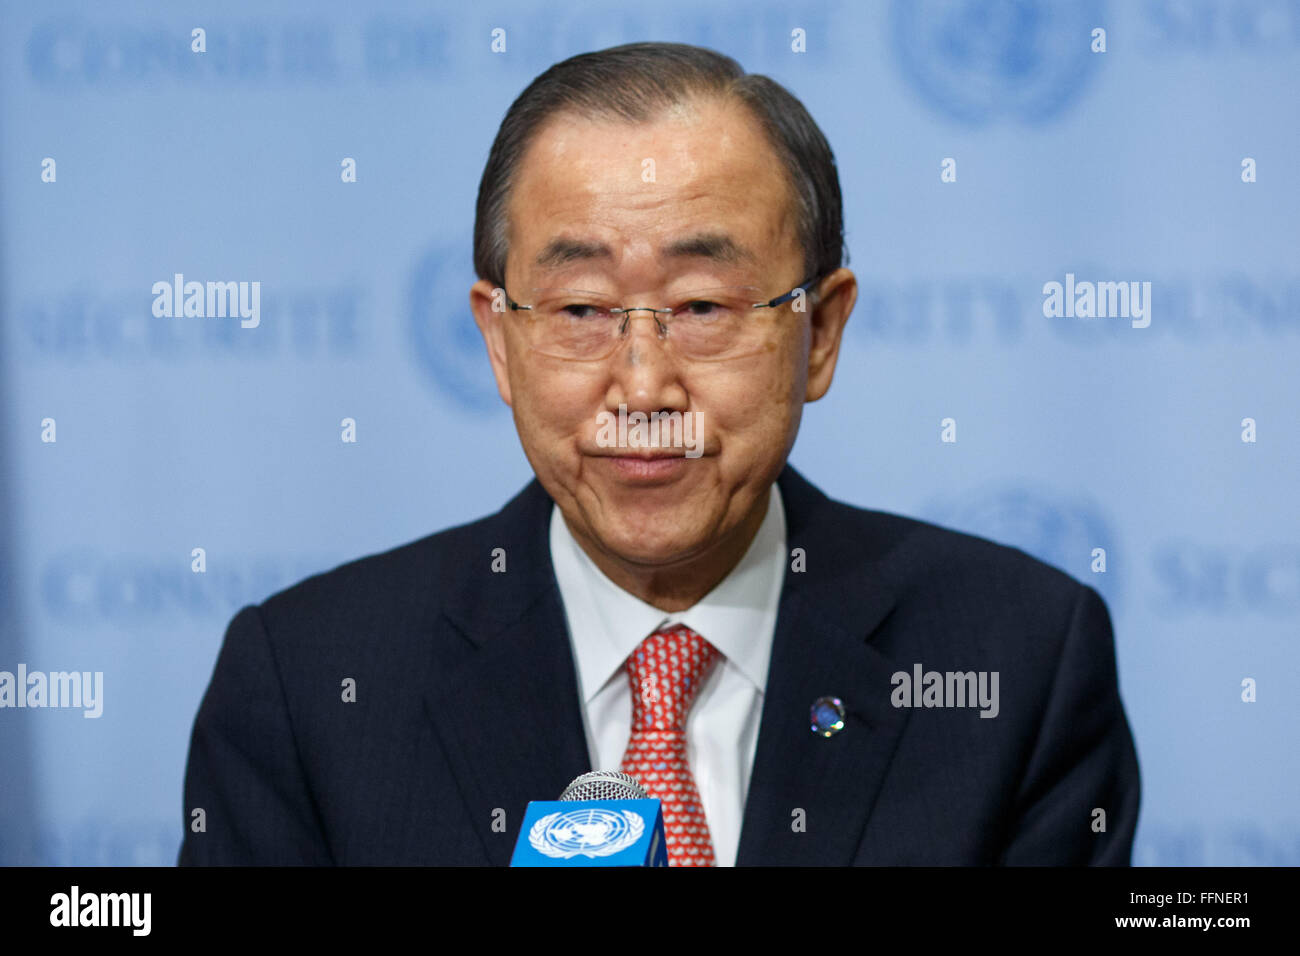 United Nations, UN headquarters in New York. 16th Feb, 2016. United Nations Secretary-General Ban Ki-moon reads - Stock Image